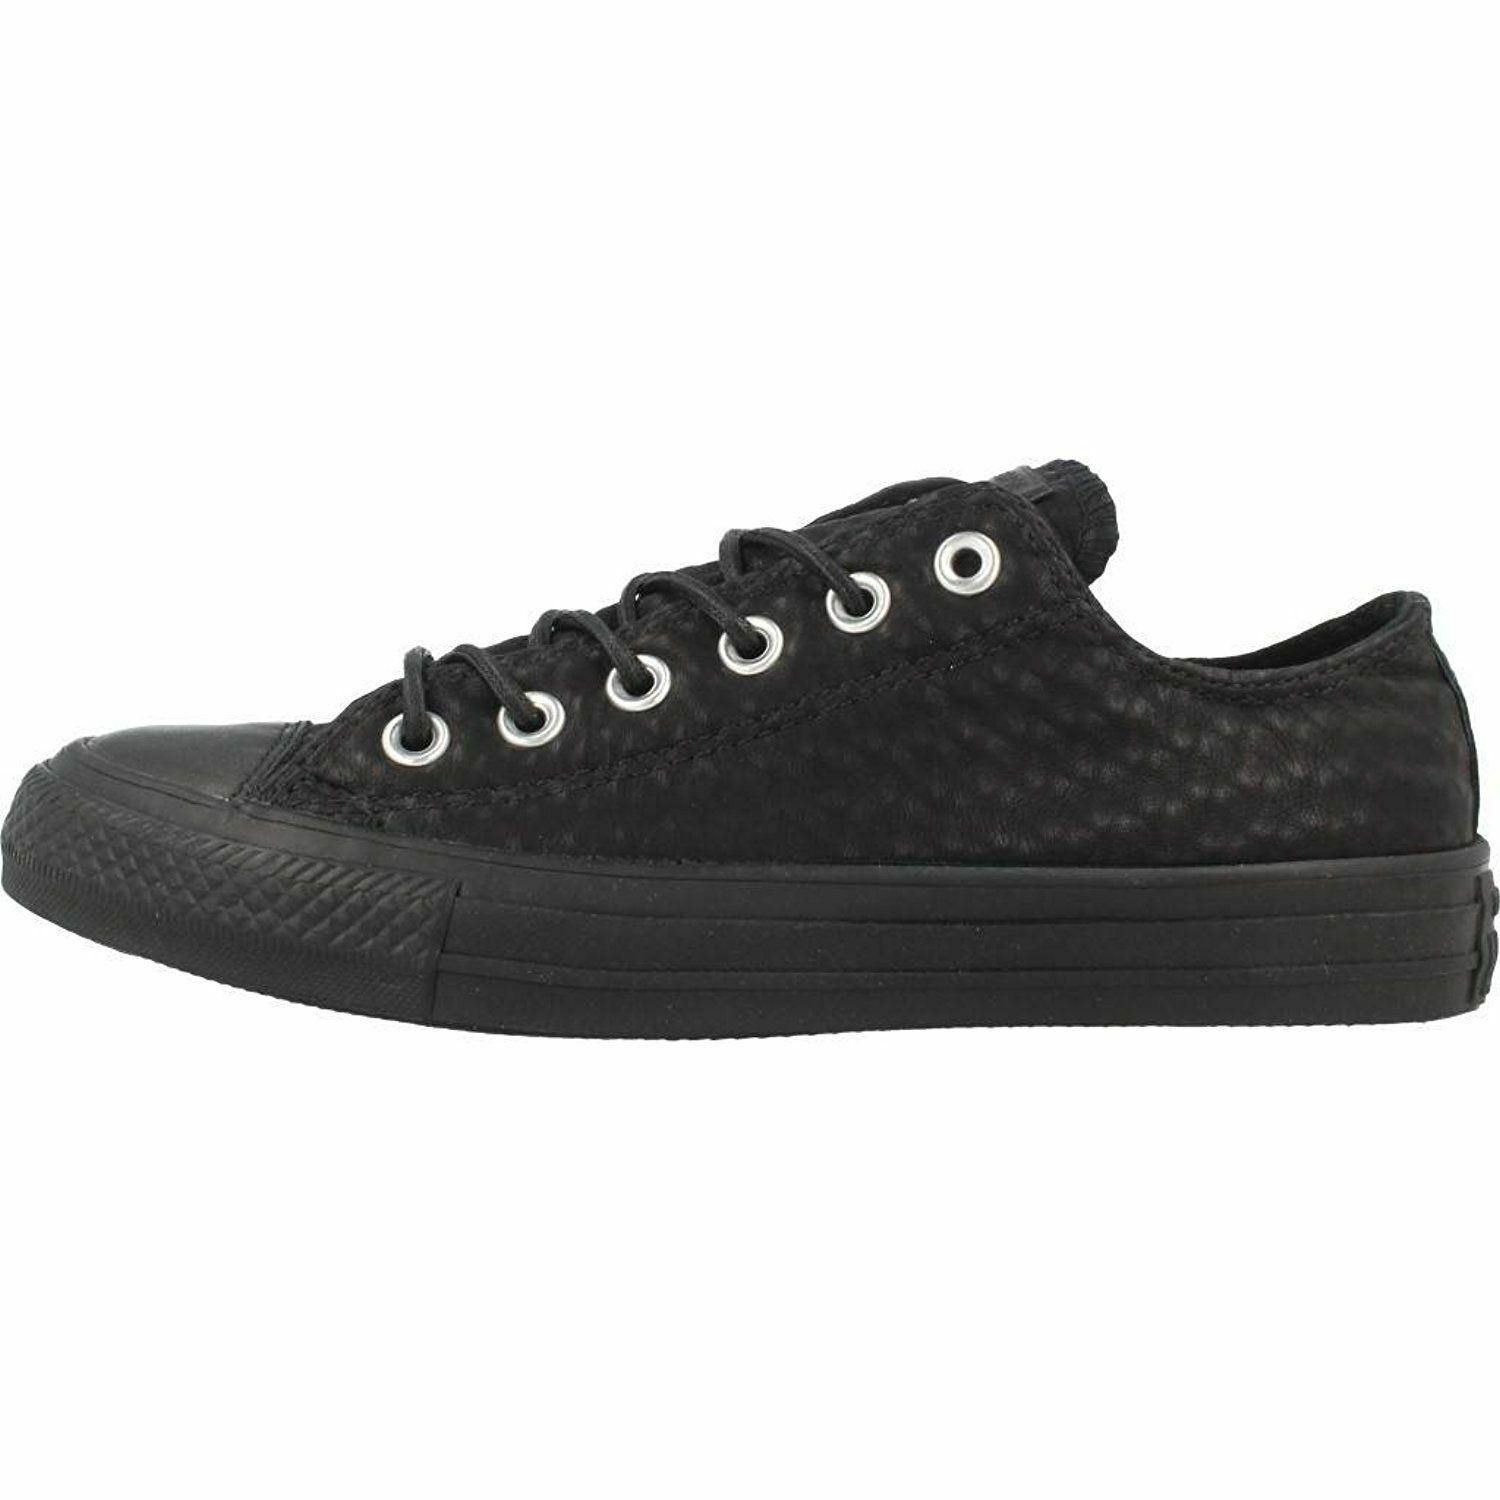 Women Athletic Sneakers Sneakers Sneakers Converse Chuck Taylor Craft Leather Casual Black 153565C 45198b